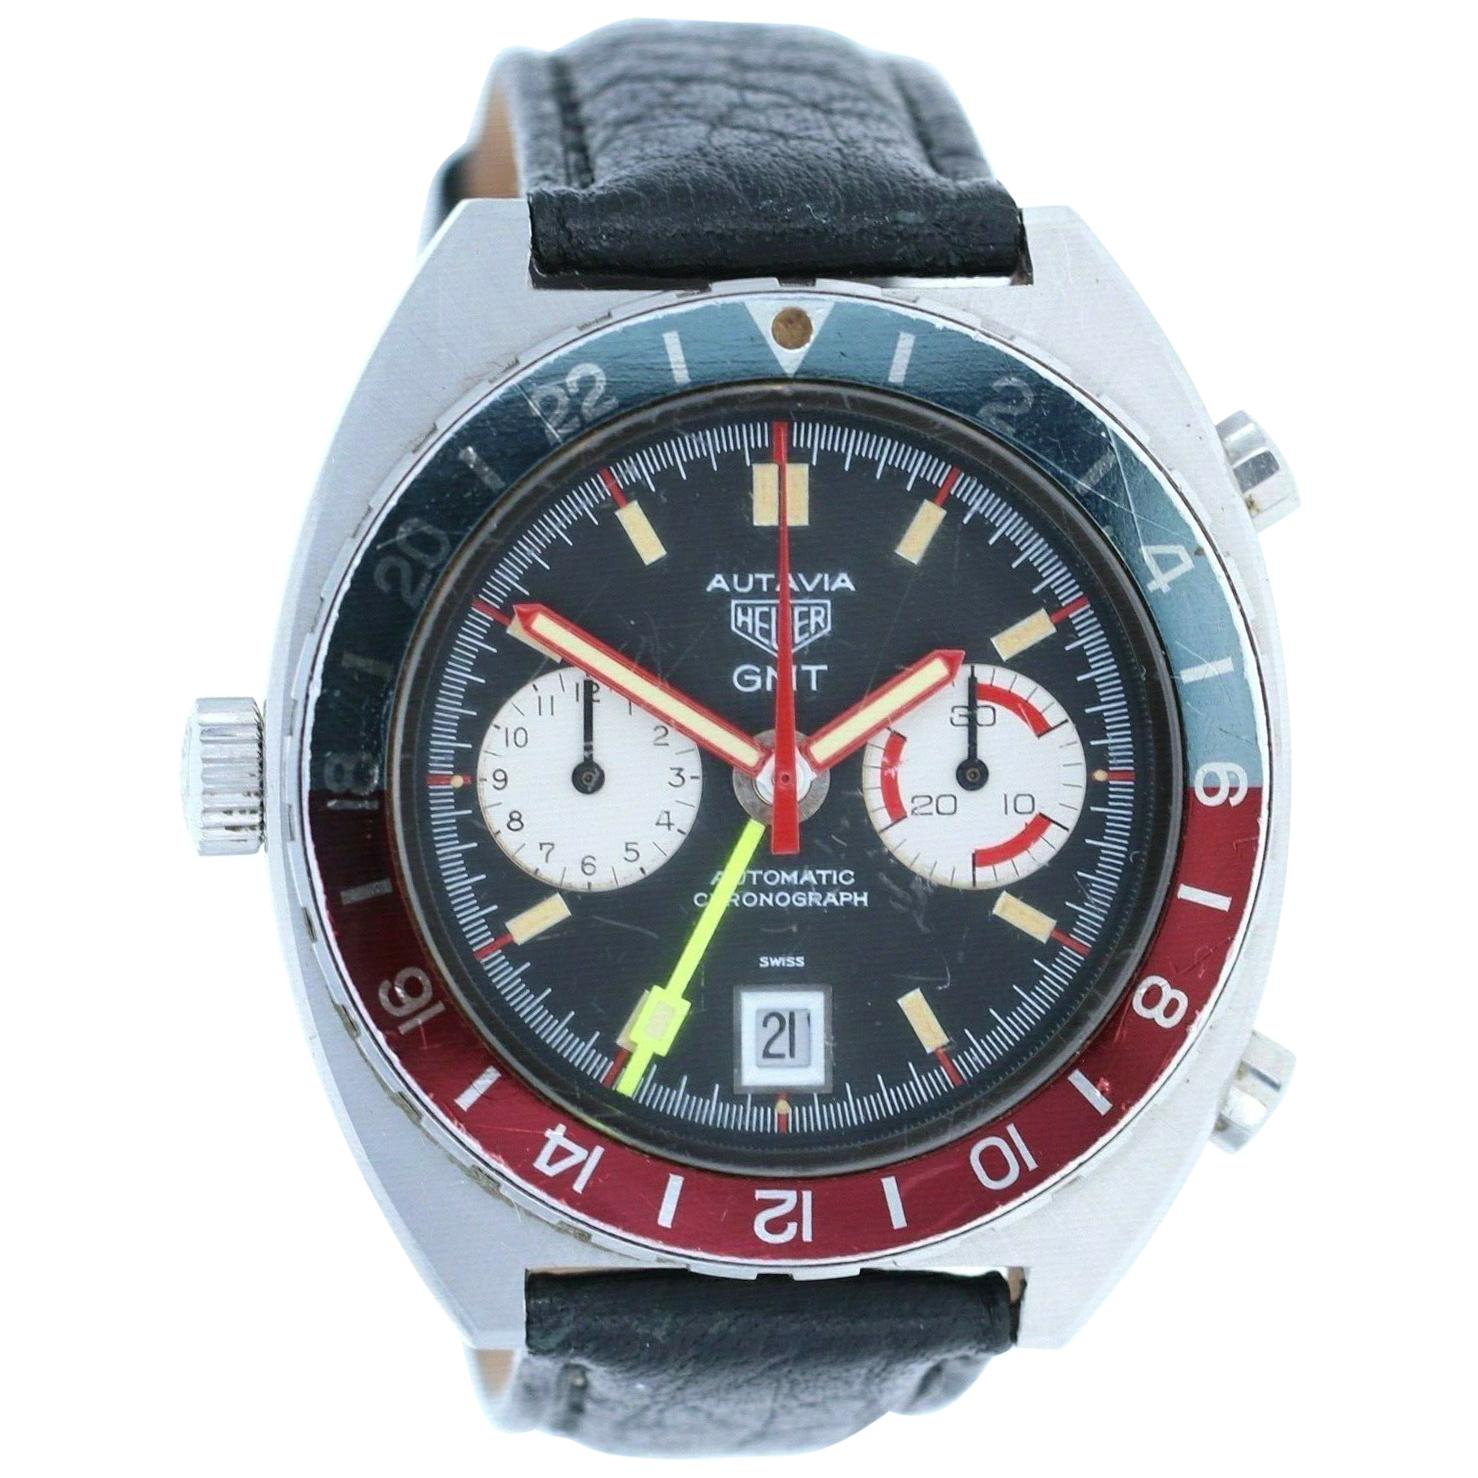 Vintage Heuer Autavia GMT 11630 Automatic Chronograph Watch with Box